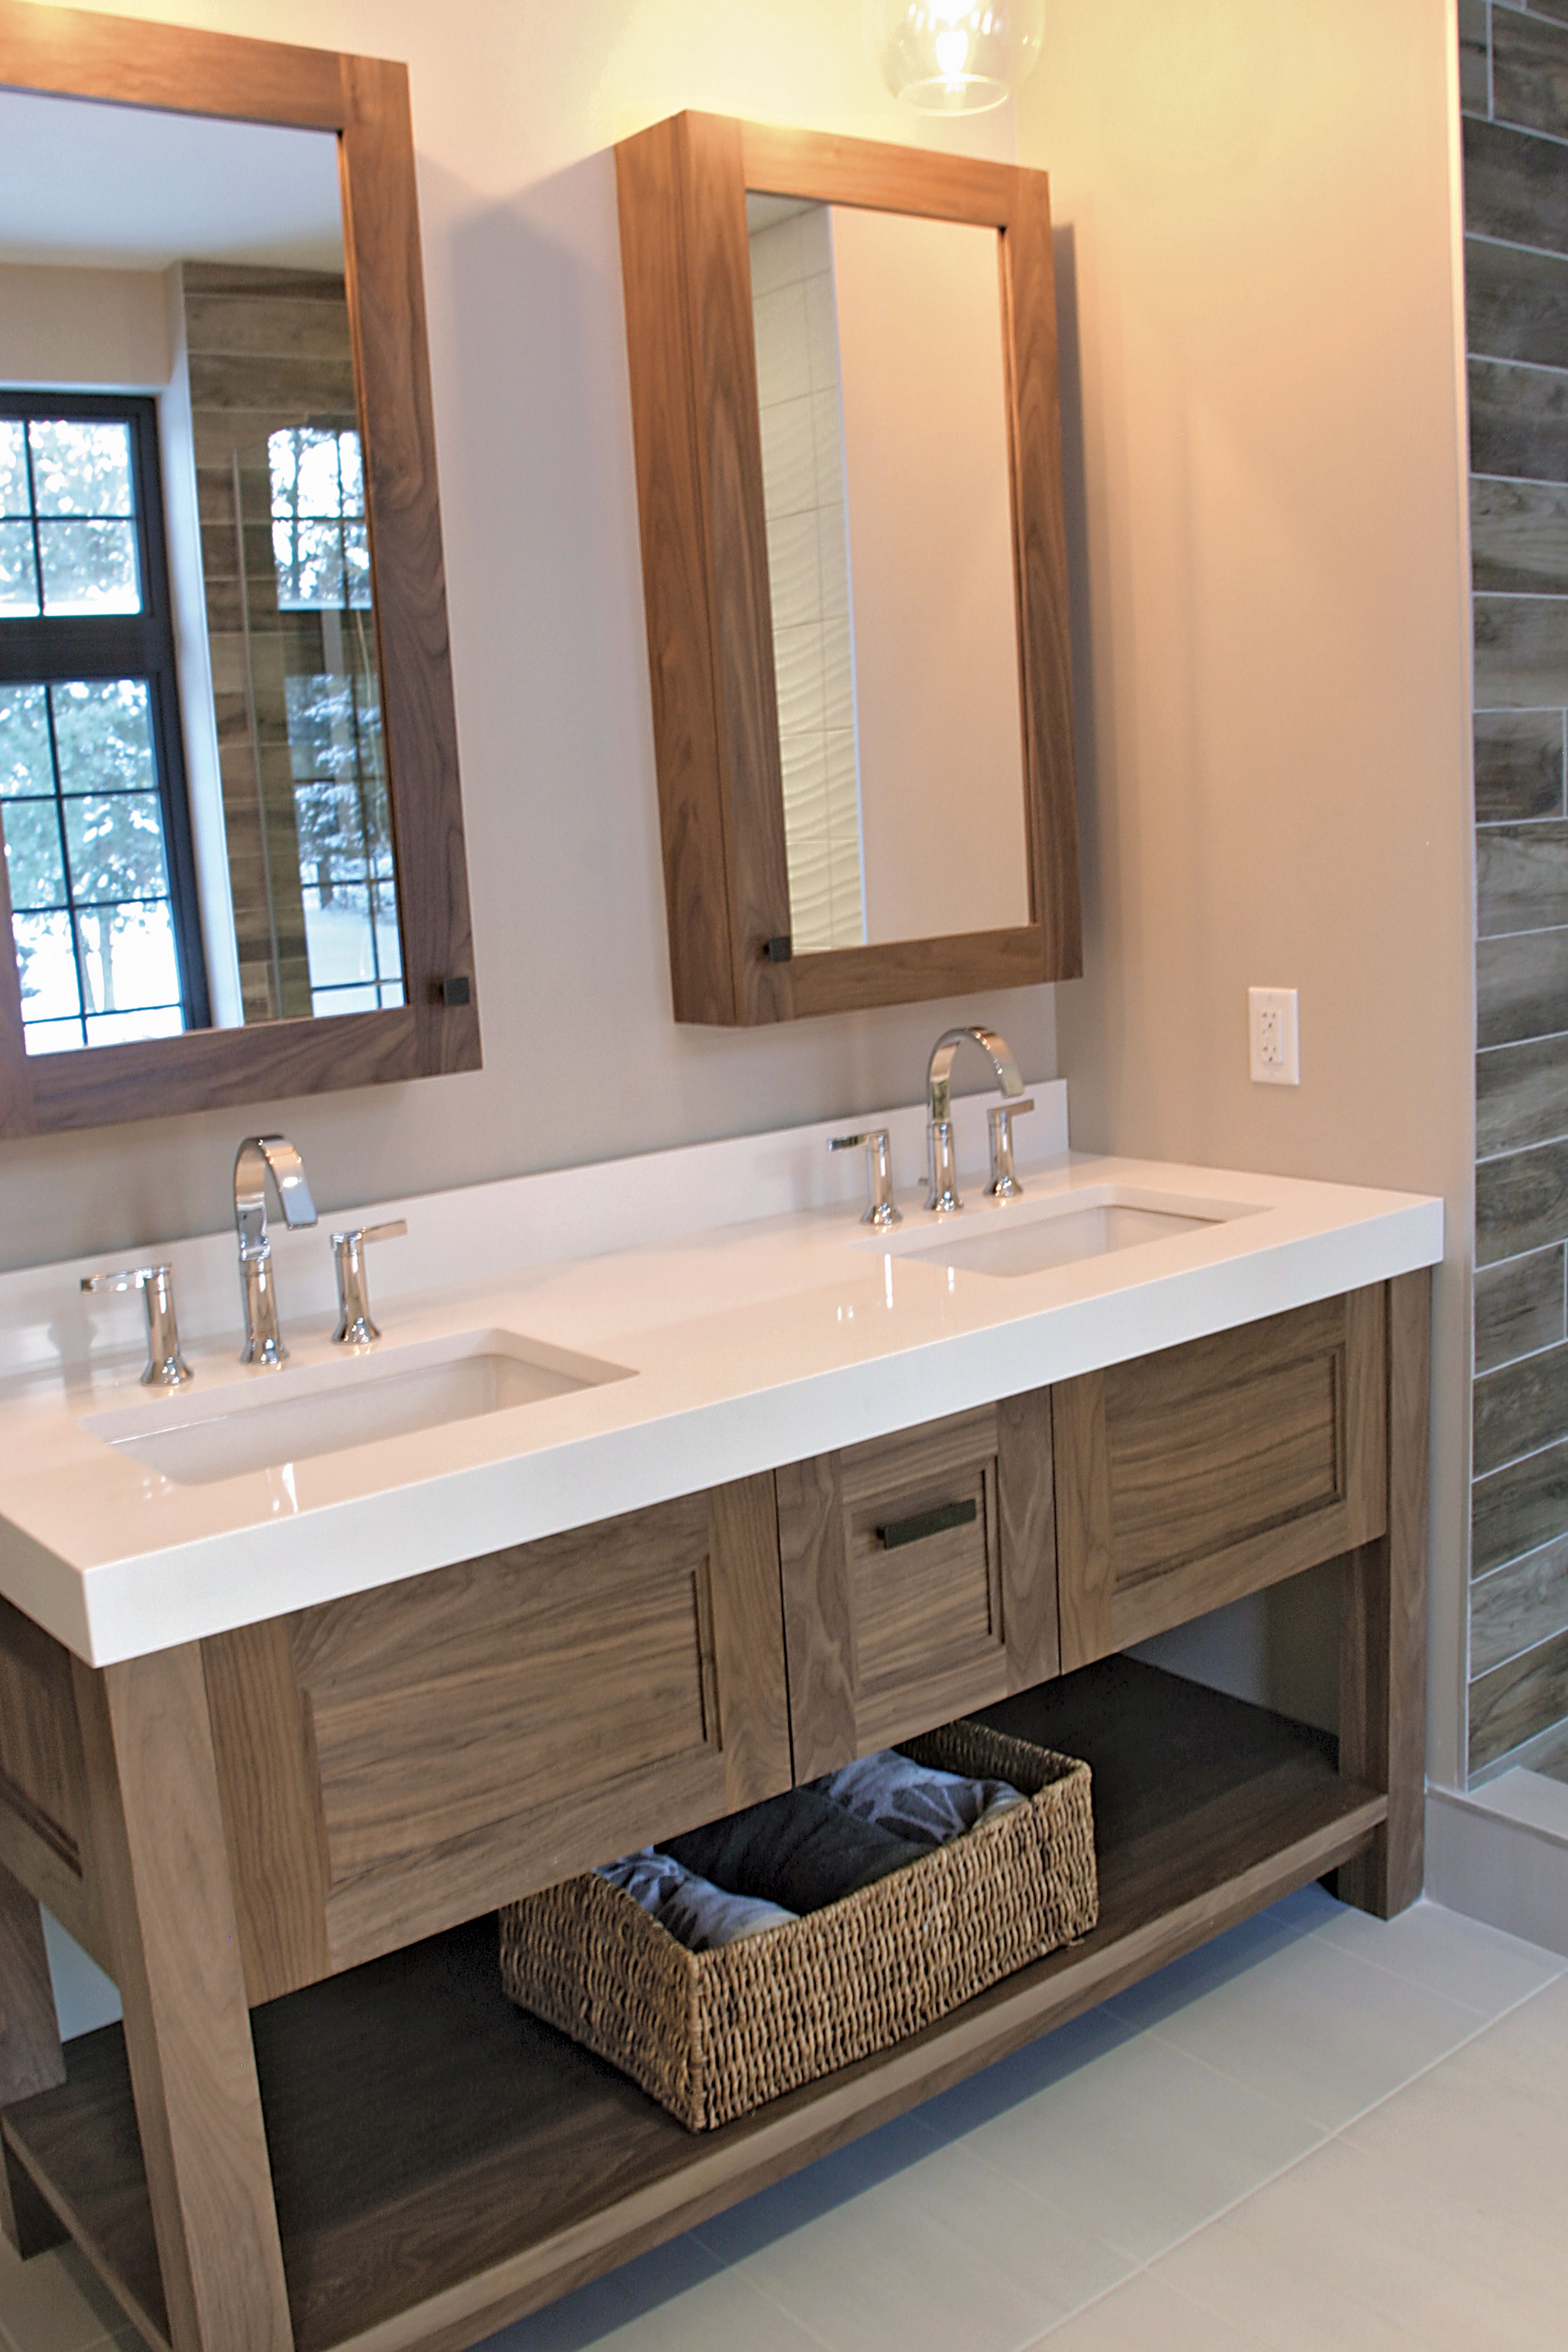 modern bathrooms designs 2014. 1st Place Winner Contemporary Modern Bathroom In The 2014 Design Excellence Awards Designer Dawn Tite # Bathrooms Designs T